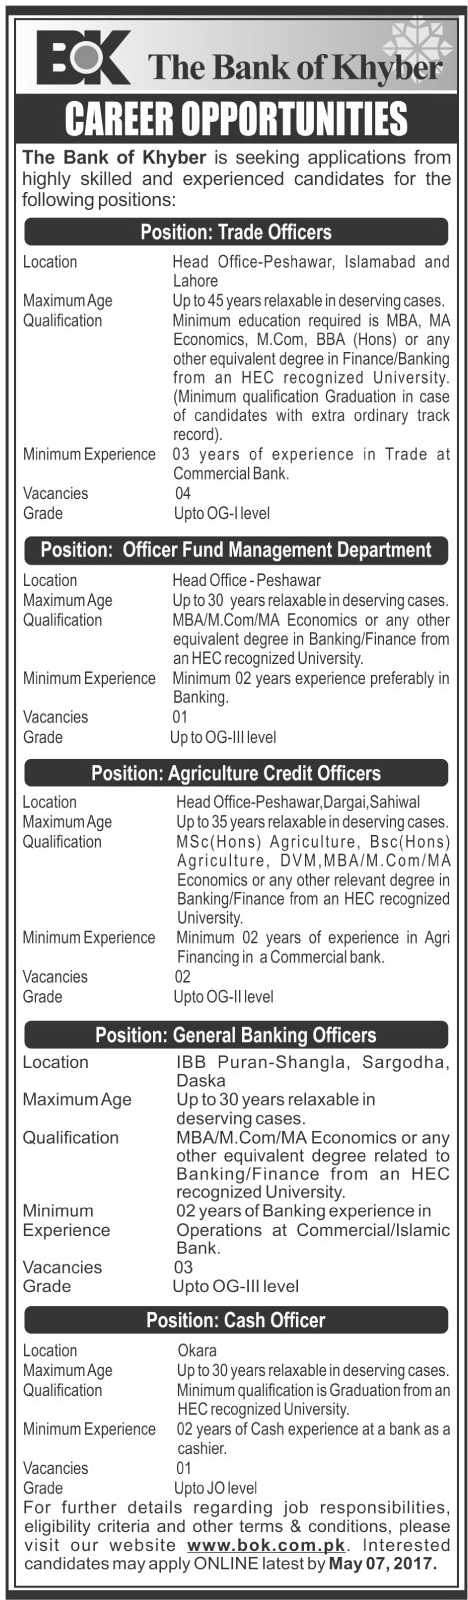 Trade Officer Jobs in The Bank Of Khyber bok.com.pk  23 April 2017